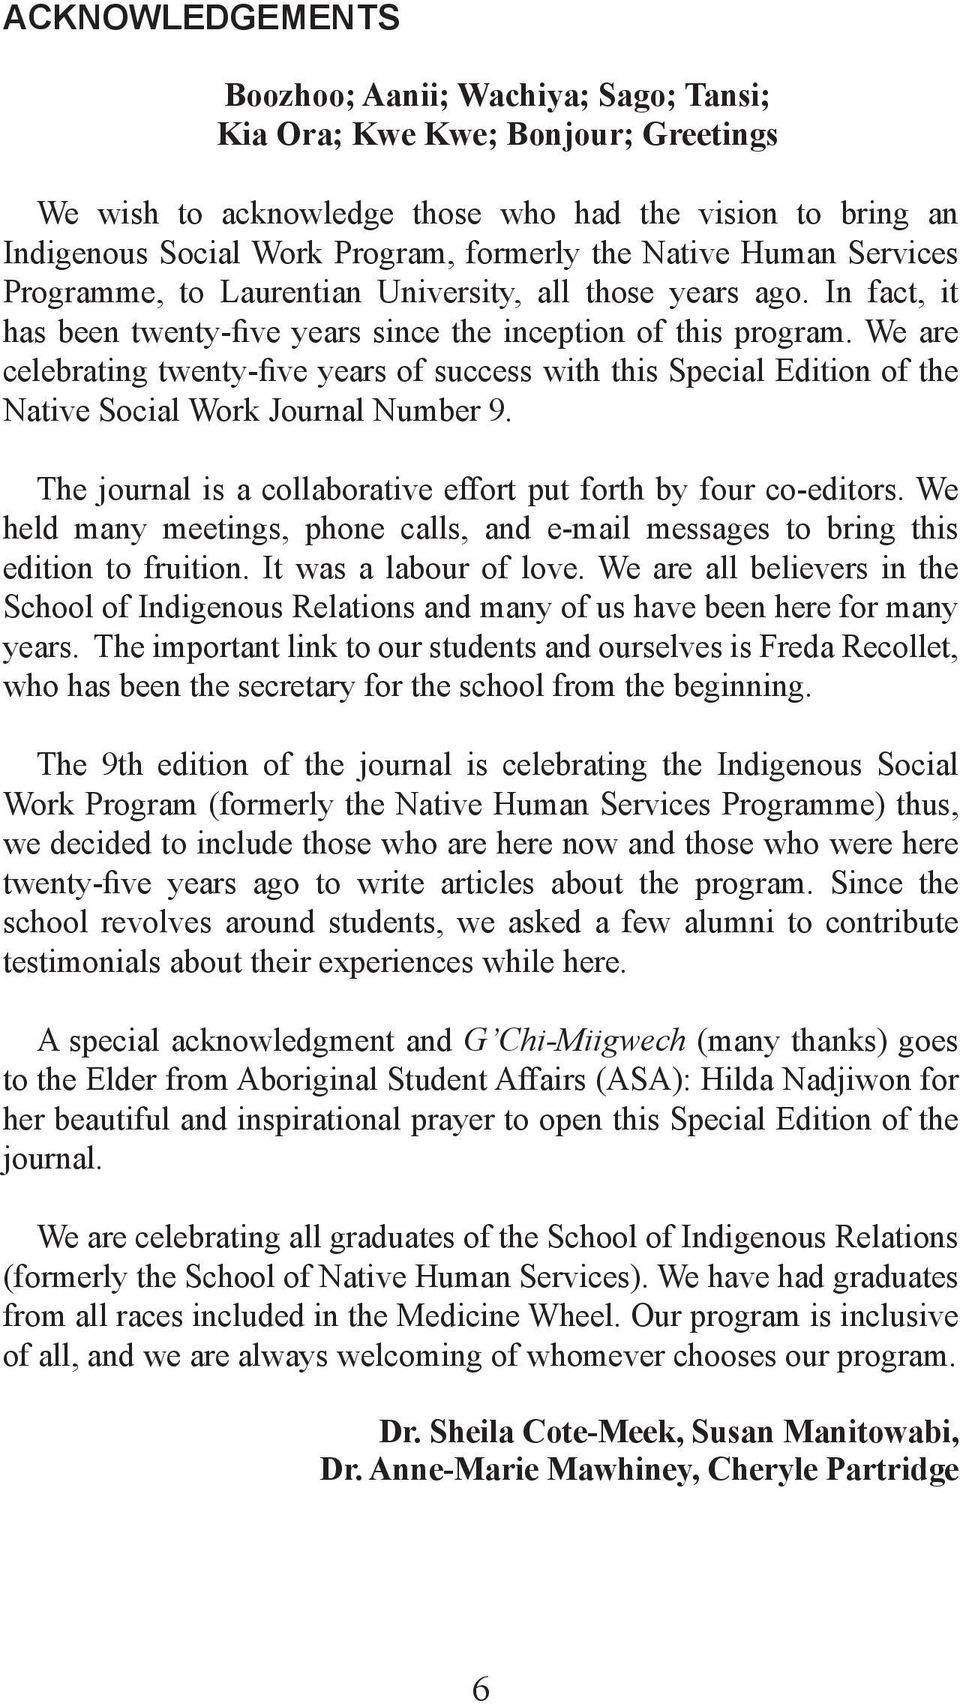 We are celebrating twenty-five years of success with this Special Edition of the Native Social Work Journal Number 9. The journal is a collaborative effort put forth by four co-editors.